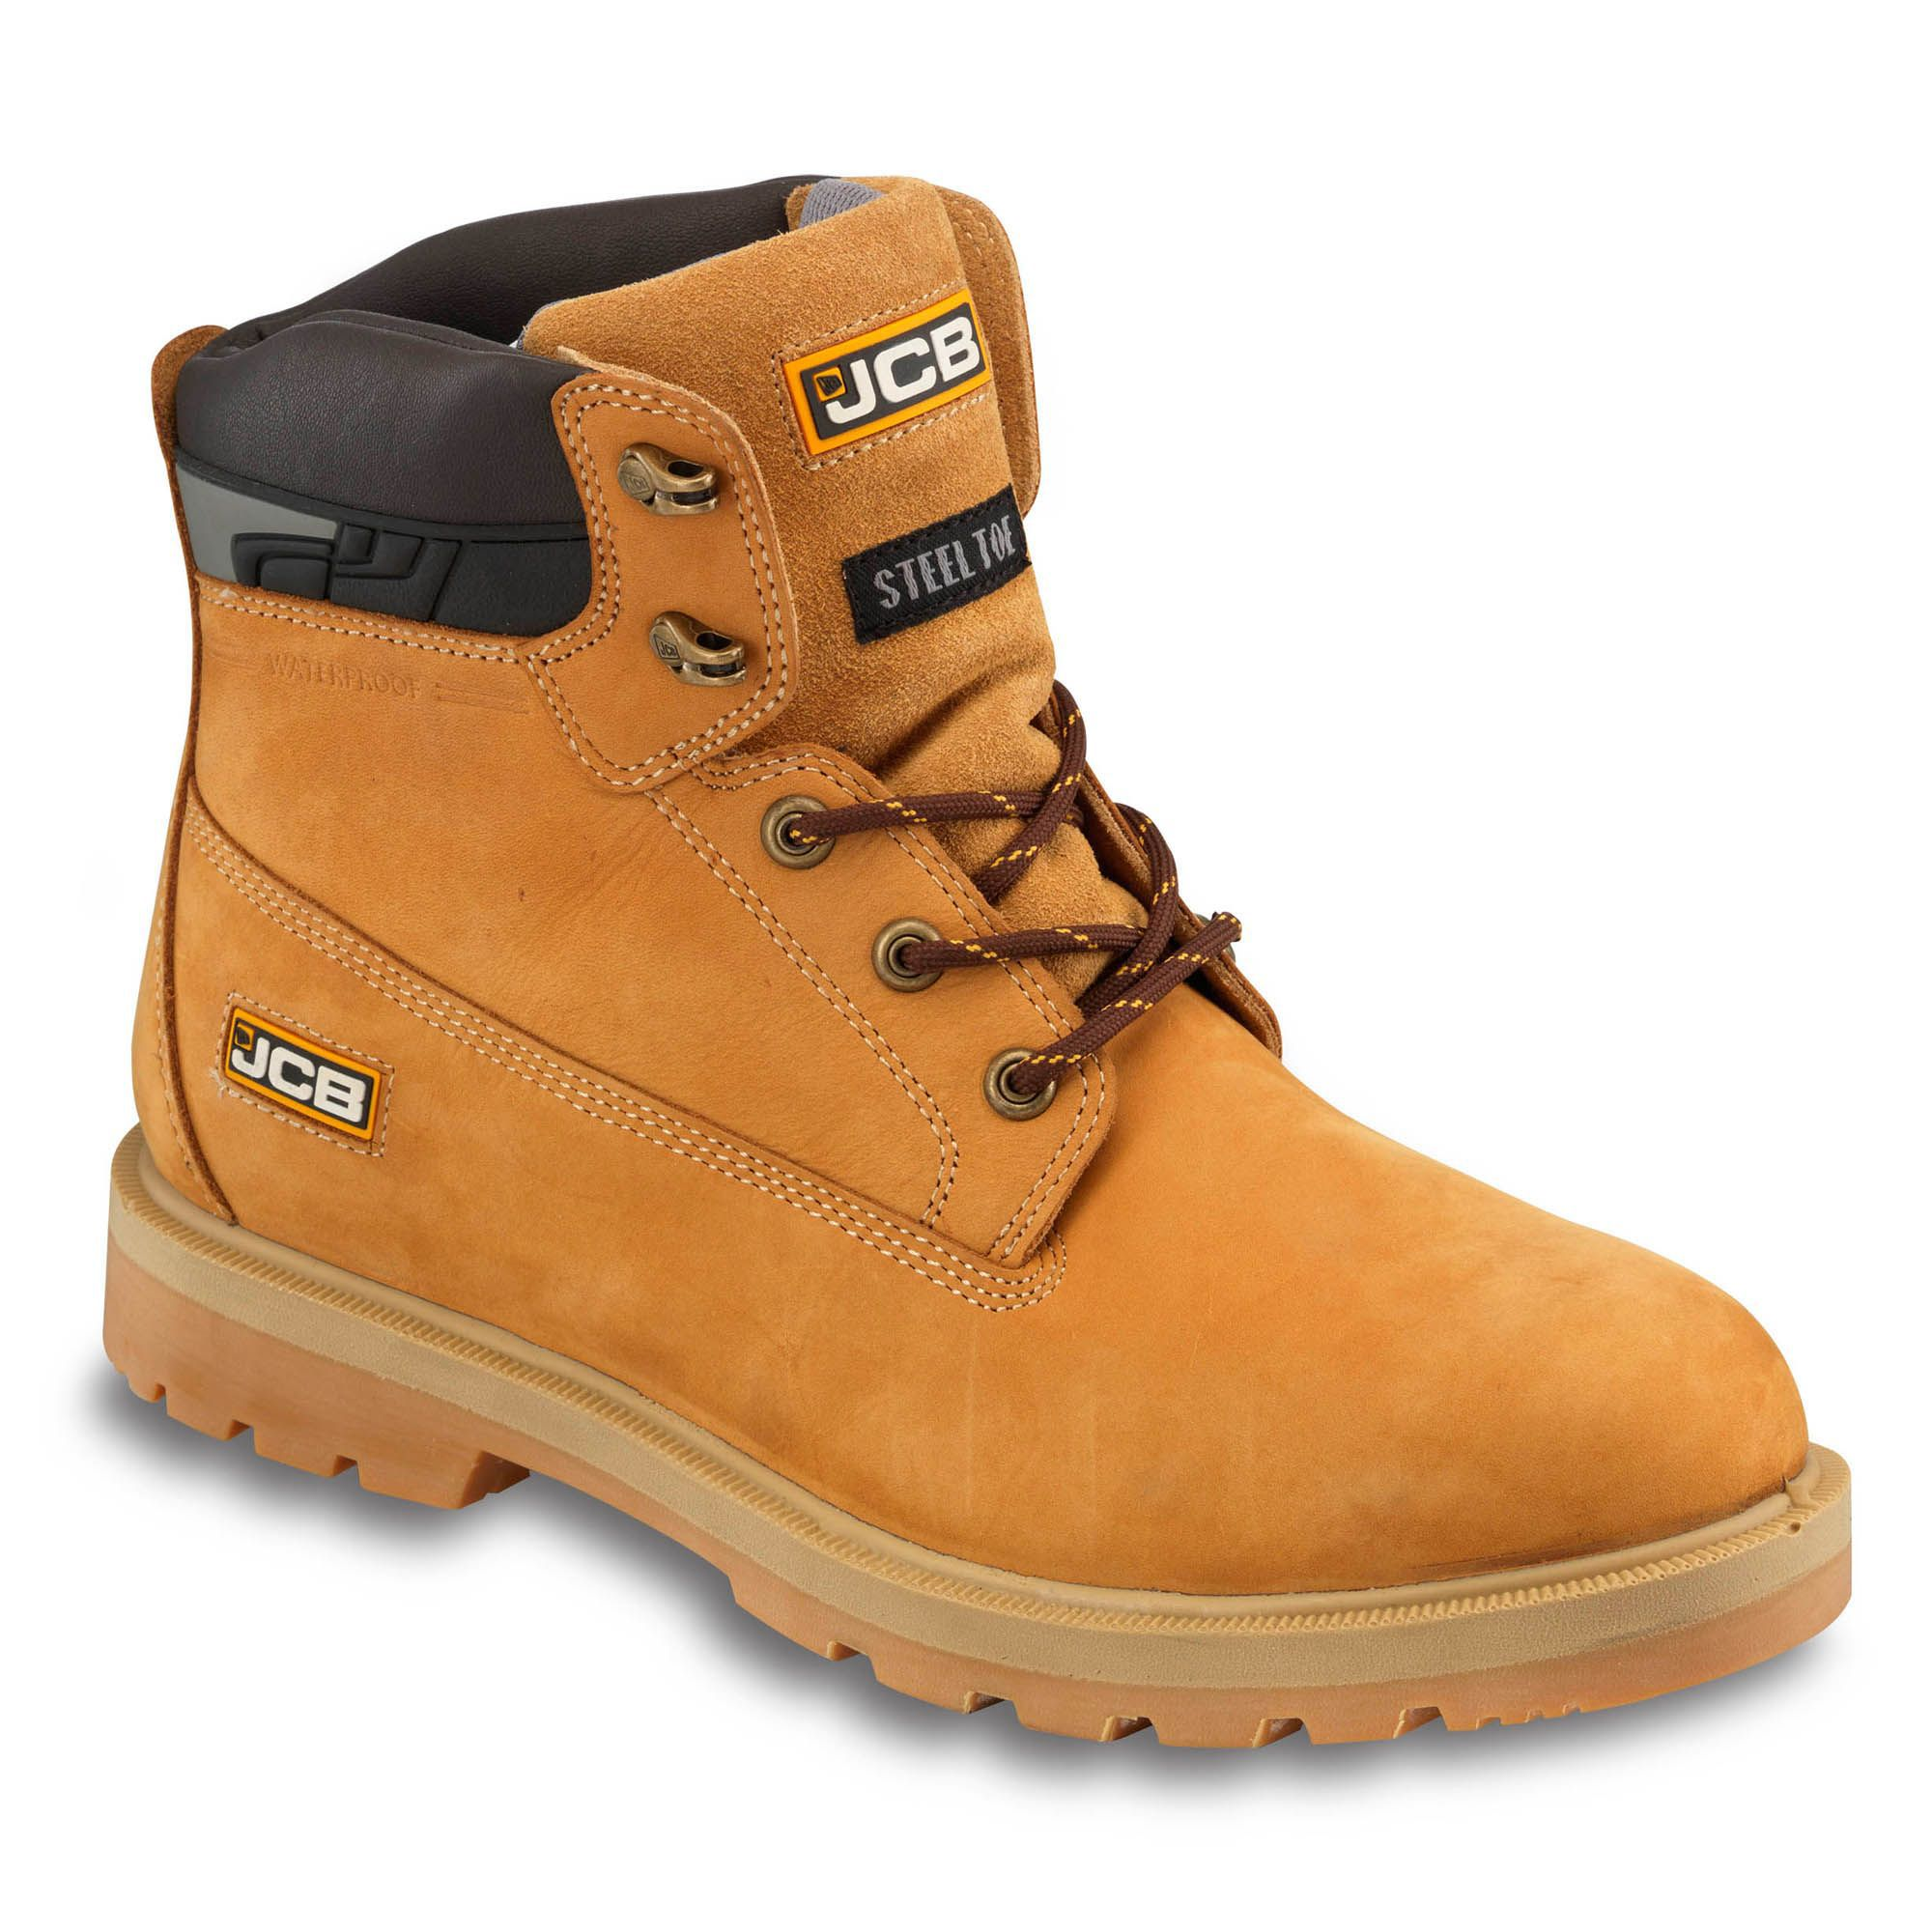 Jcb Honey Protector Safety Boots, Size 9